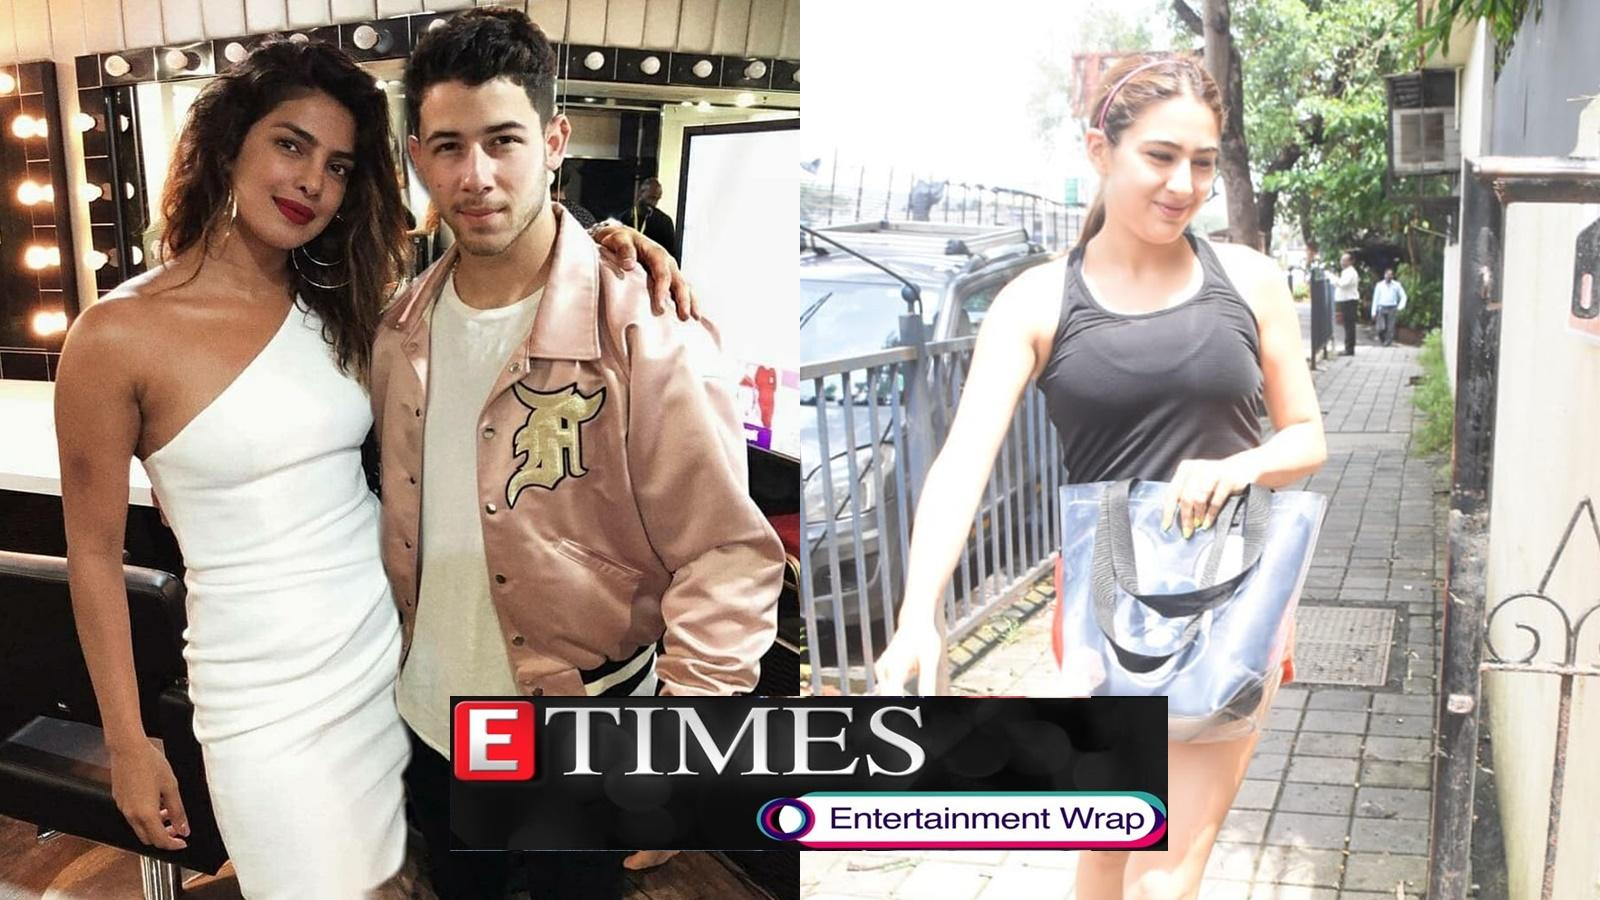 nick-jonas-whispers-i-love-you-to-wife-priyanka-chopra-mid-concert-sara-ali-khan-rocks-no-makeup-look-as-she-gets-papped-outside-gym-and-more